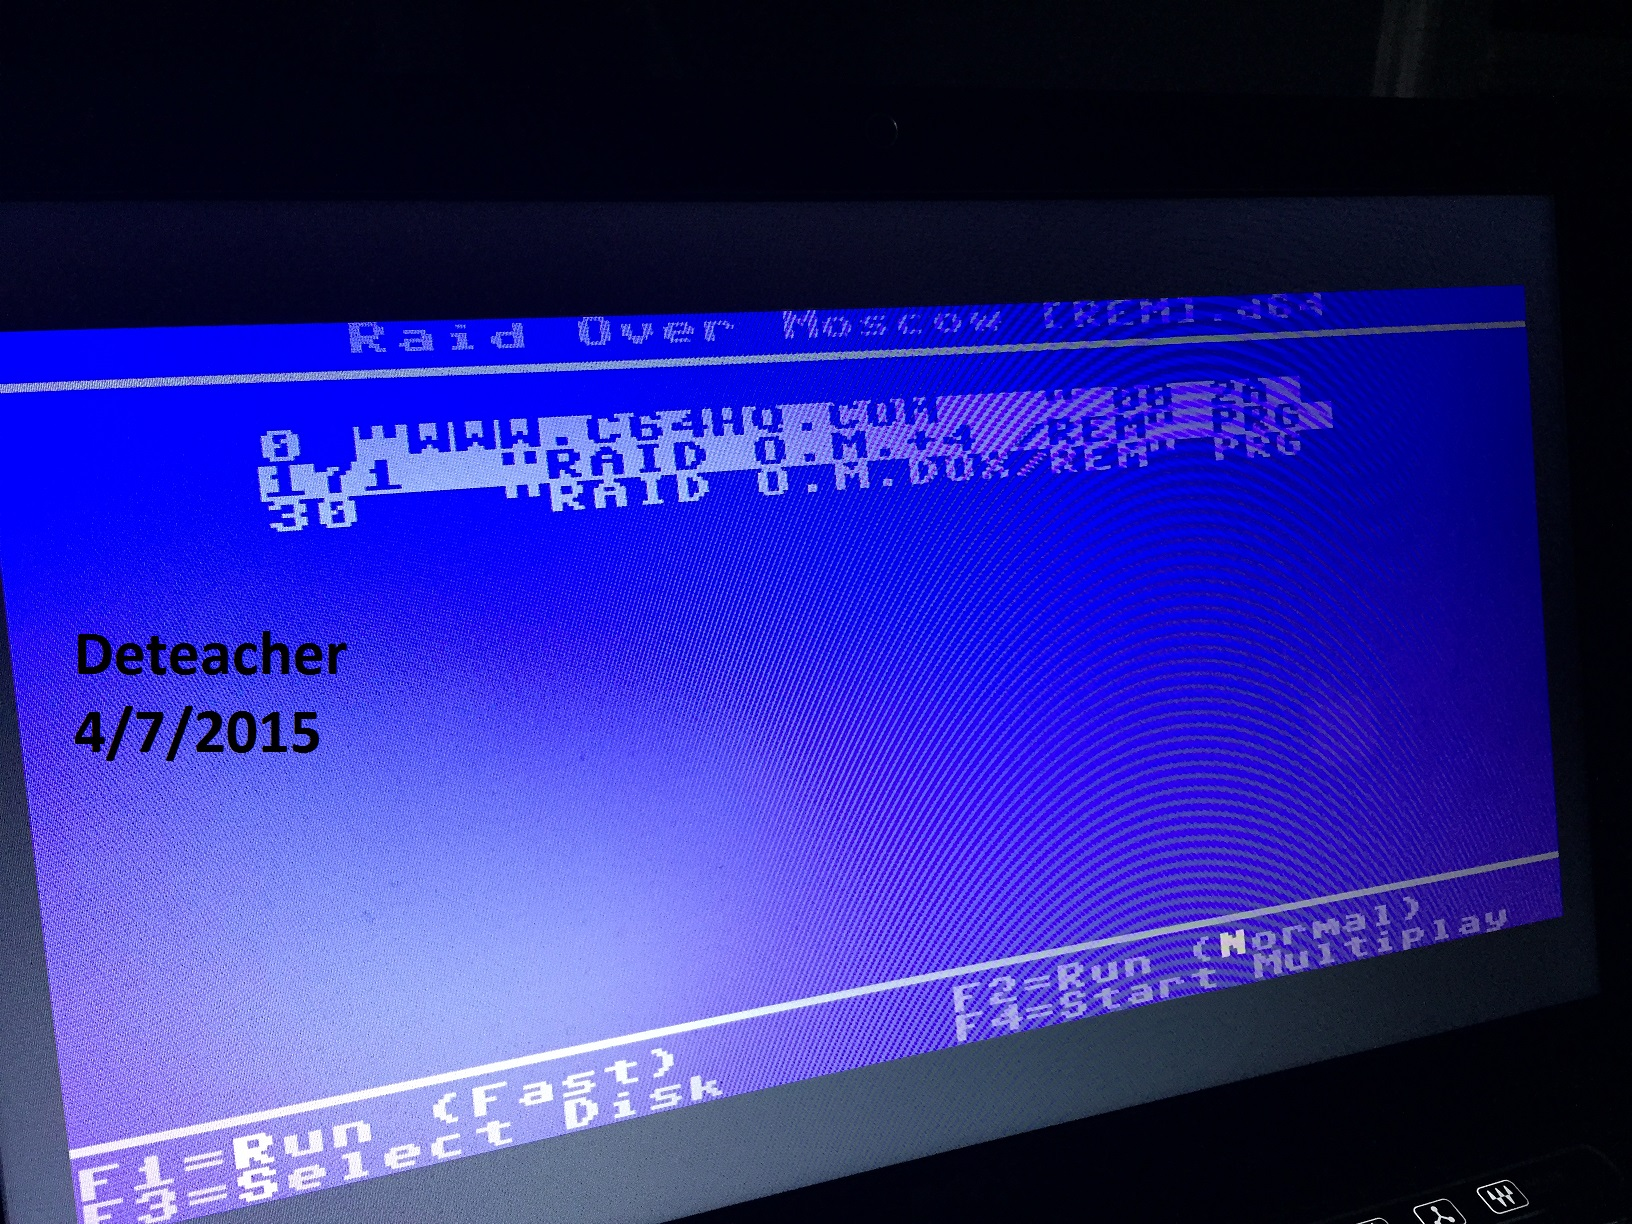 Deteacher: Raid Over Moscow: Beginner (Commodore 64 Emulated) 133,400 points on 2015-04-07 21:32:26